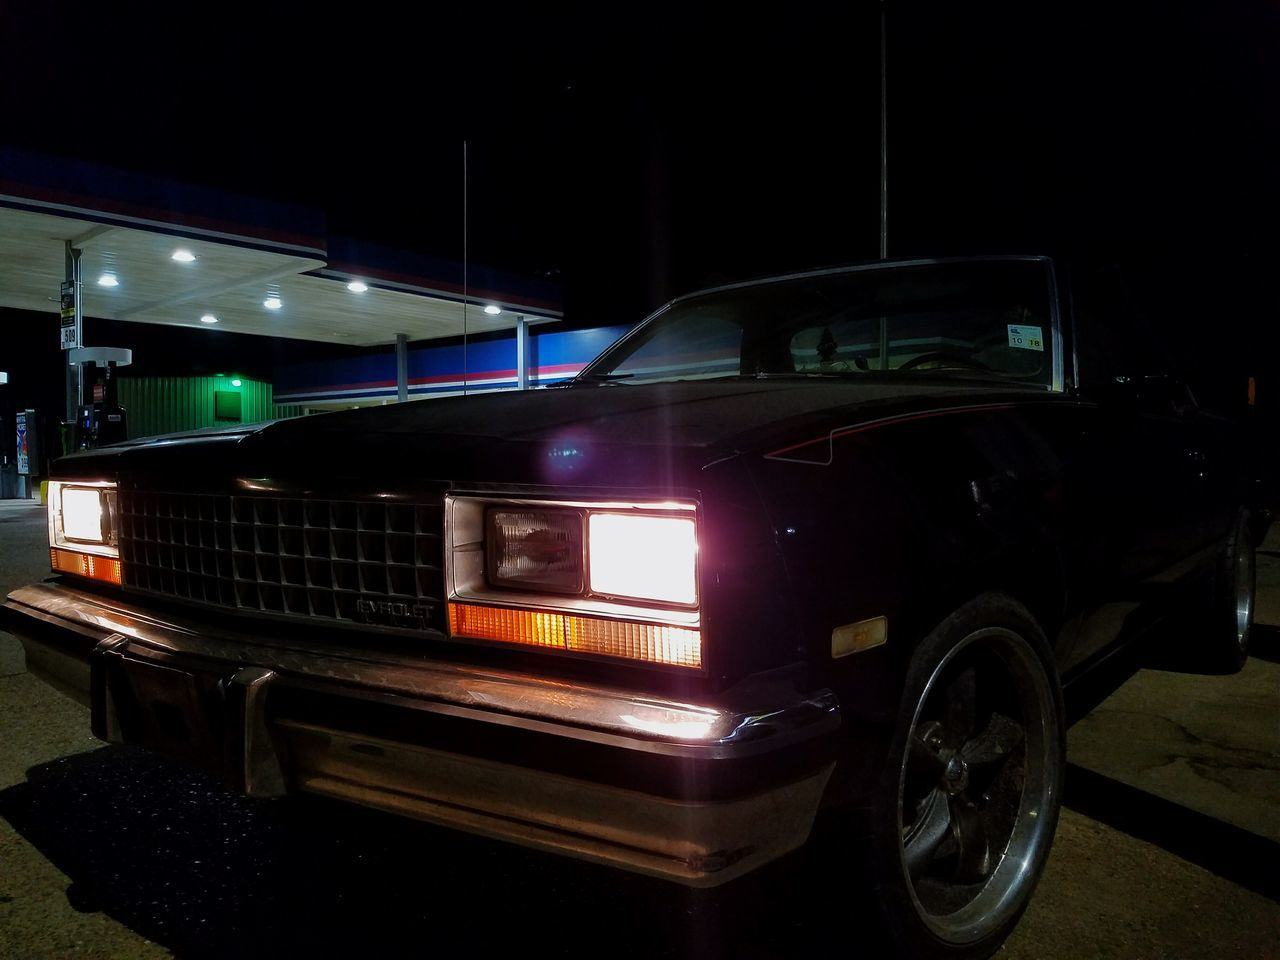 Night Car Illuminated Transportation No People Parking Garage Indoors  El Camino Elcamino Cars Old Car